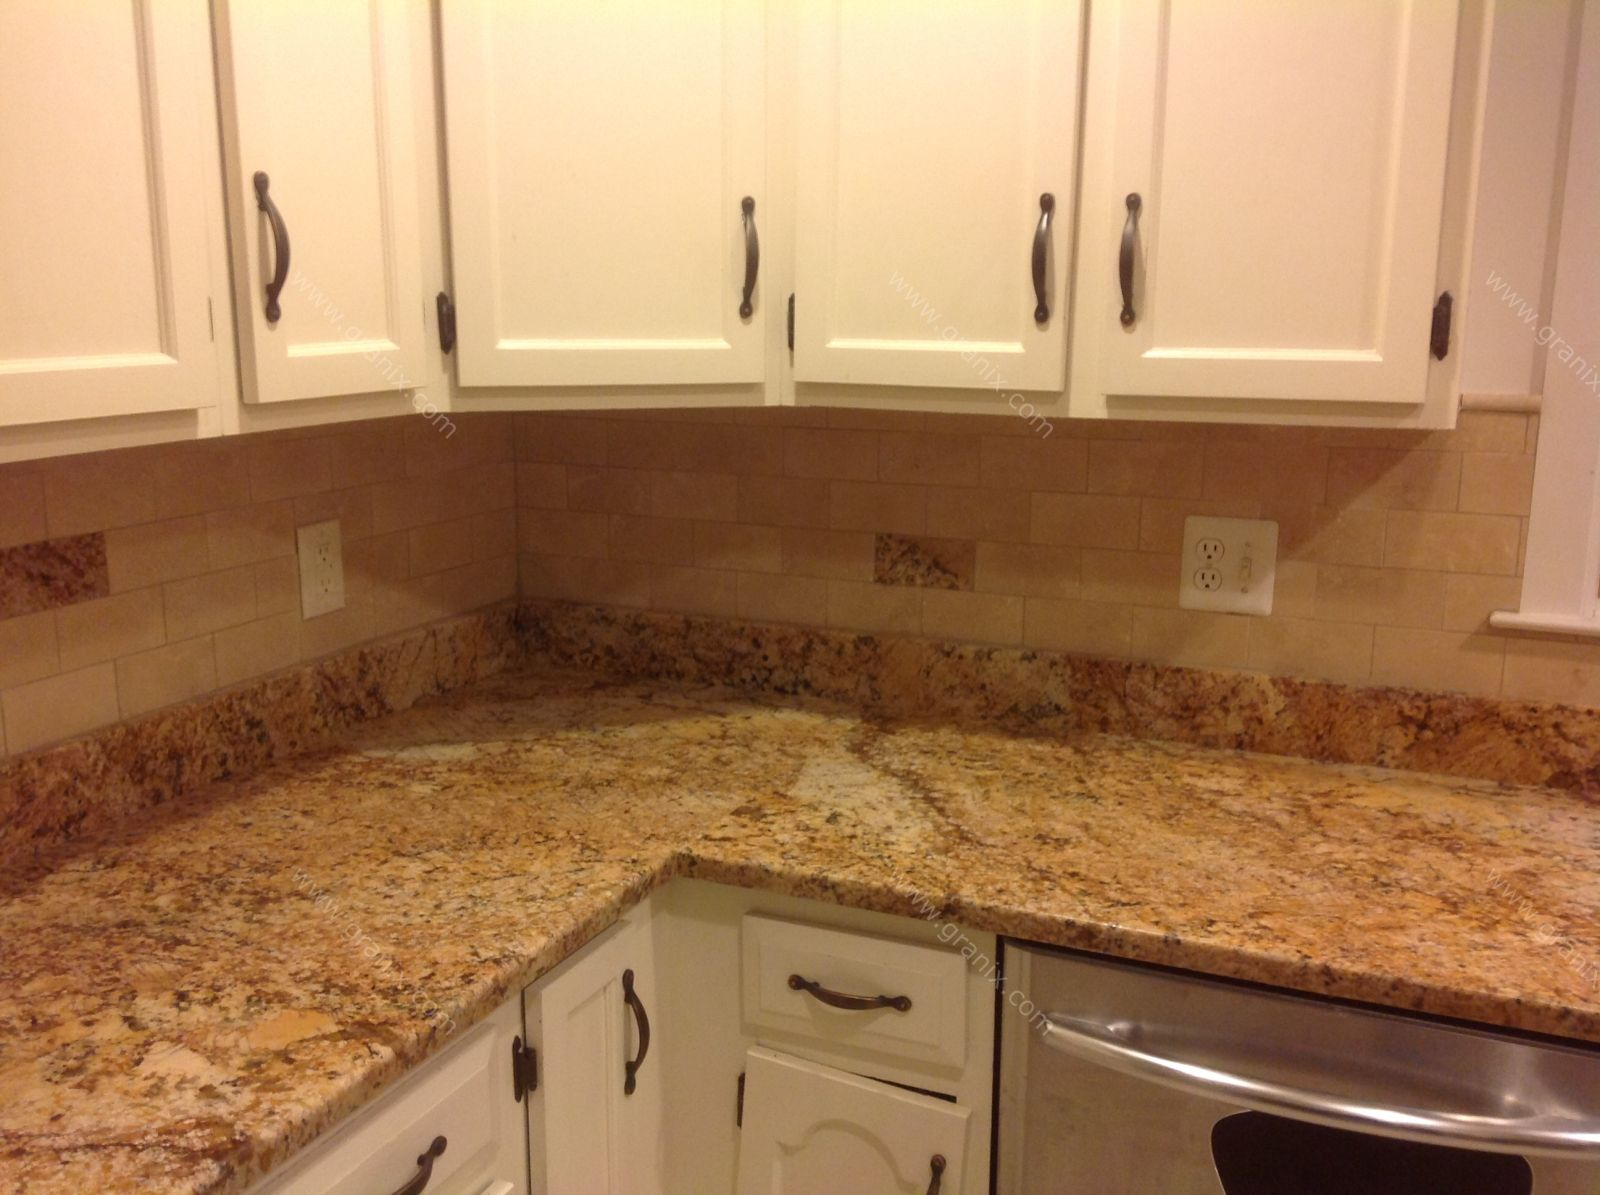 Kitchen Tiles Granite Baltic Brown Granite Countertop Pictures Backsplash